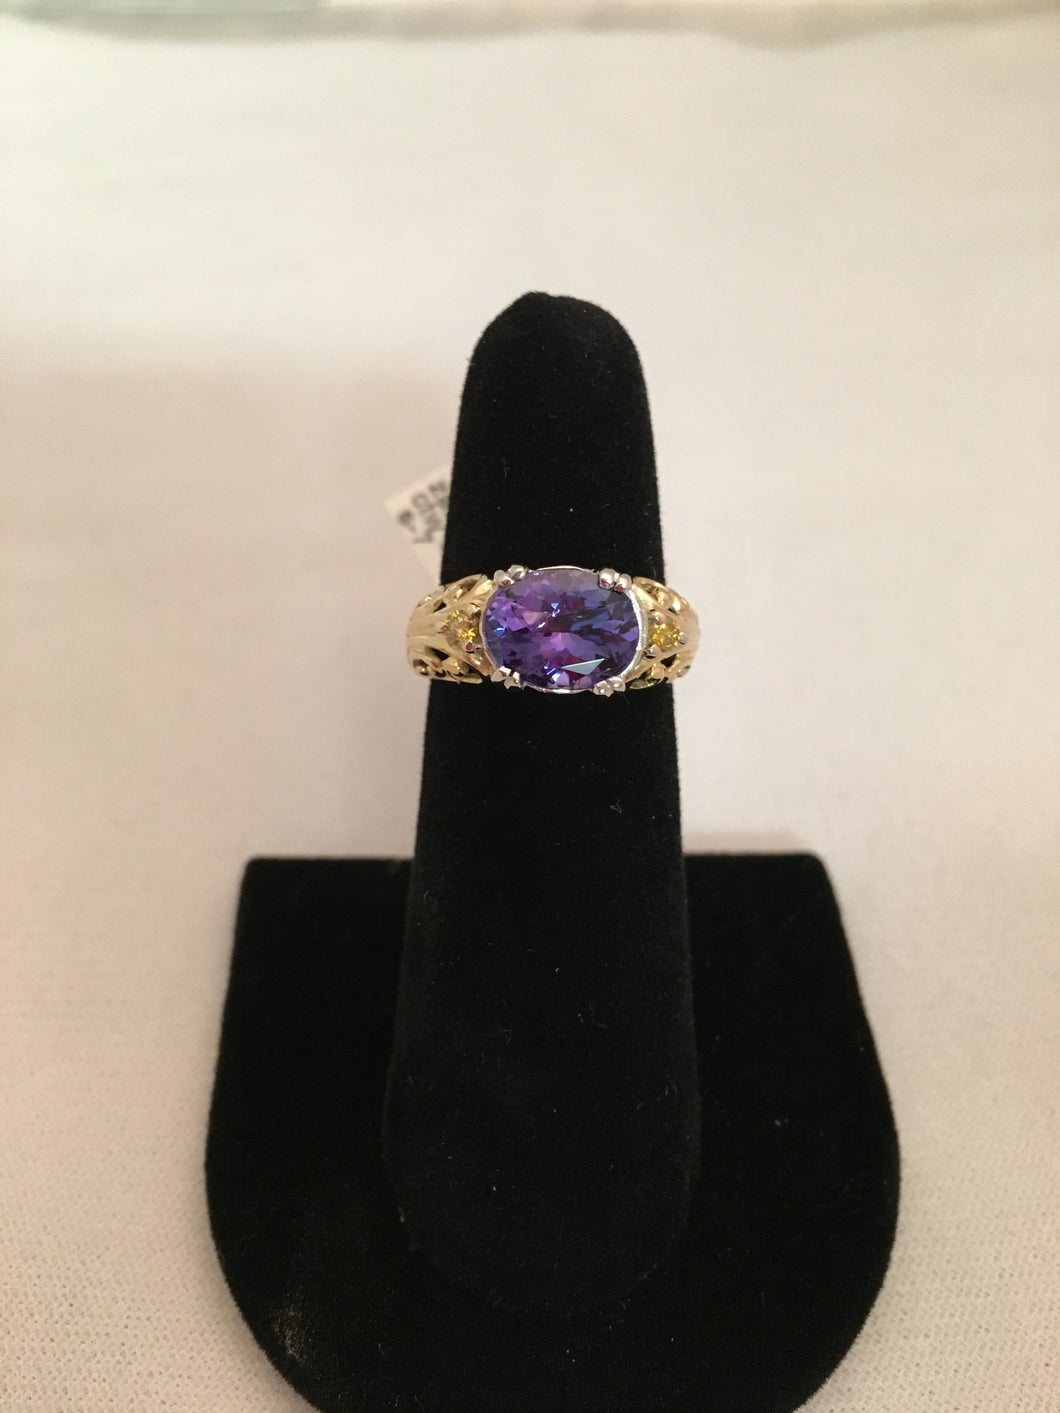 14 Kt WG Filigree Ring 2.6 Ct Tanzanite w .11 Ct Canary Diamonds Sz 7